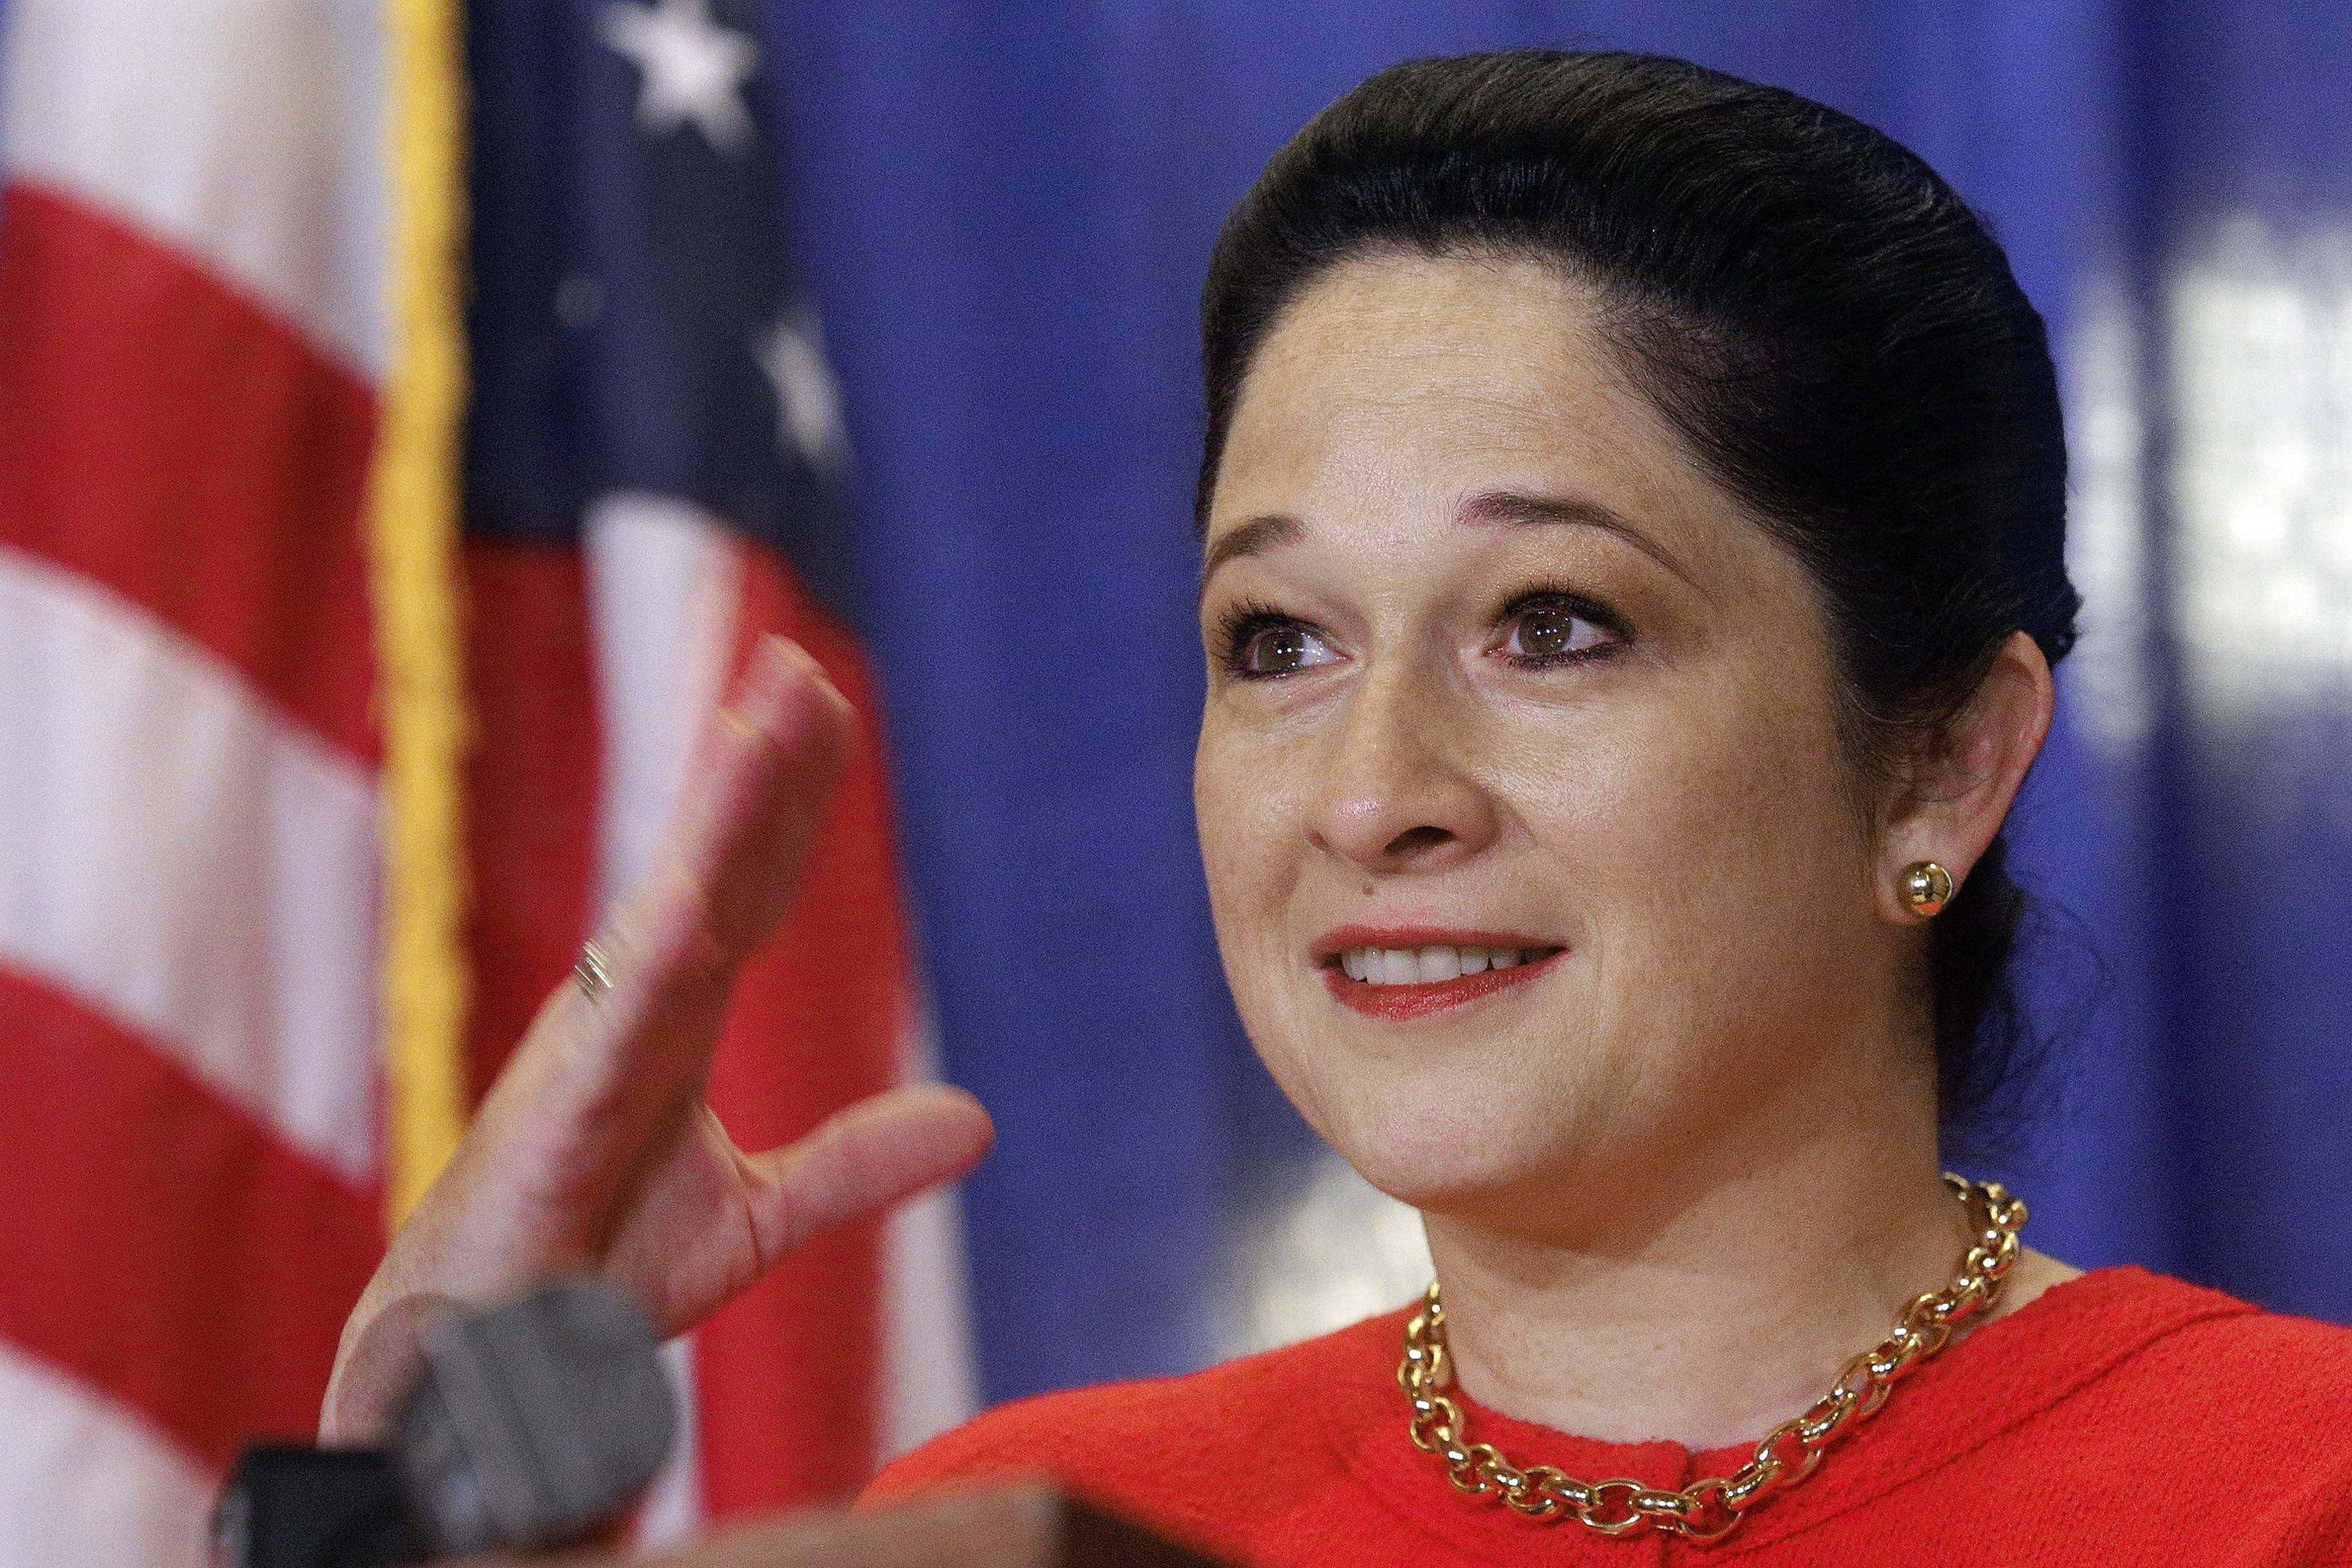 Legislation vetoed by Gov. Bruce Rauner would have given Illinois Comptroller Susana Mendoza, above, greater control over paying down the $15 billion backlog of state bills.